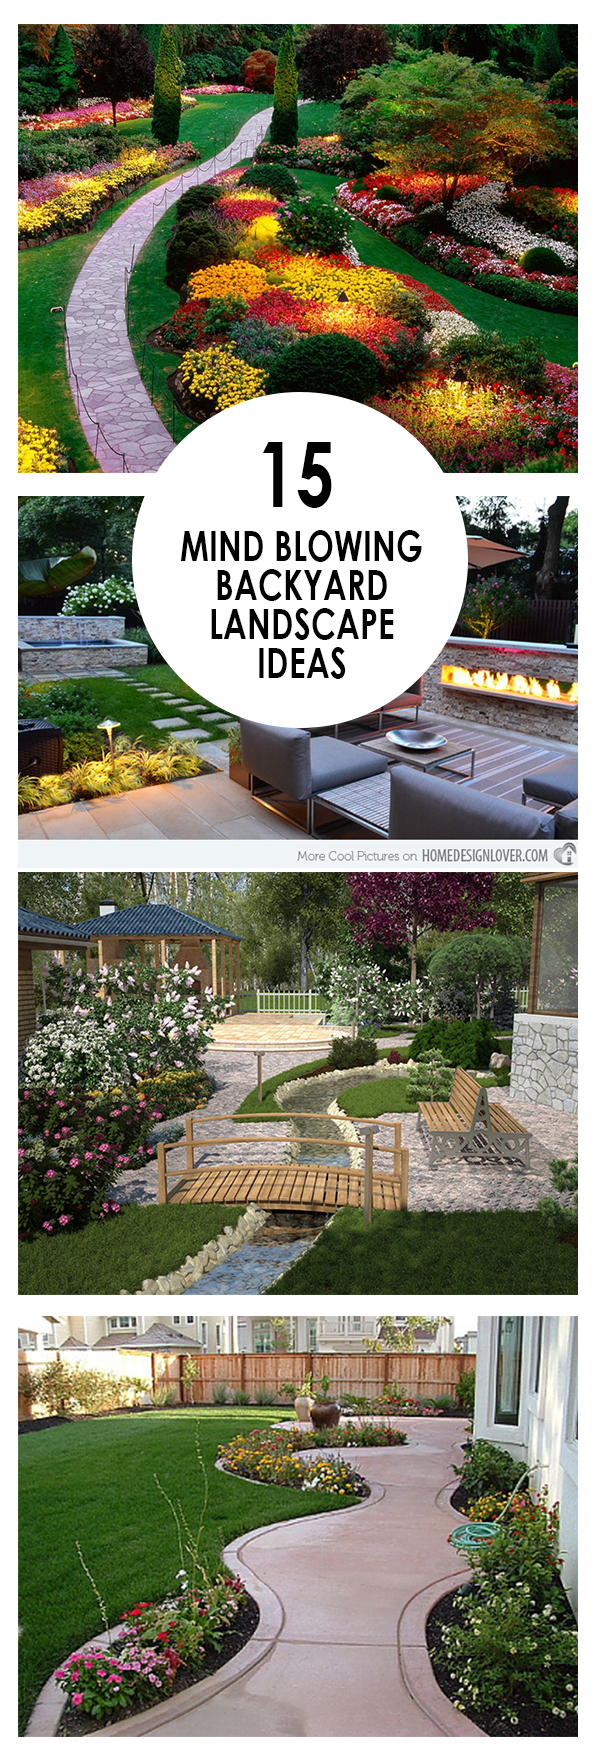 Backyard landscaping, landscape inspiration, landscape ideas, DIY landscaping, popular pin, gardening, outdoor living, outdoor entertainment. #backyardlandscape #backyardlandscaping #yardandlandscape #garden #gardening #DIYgarden